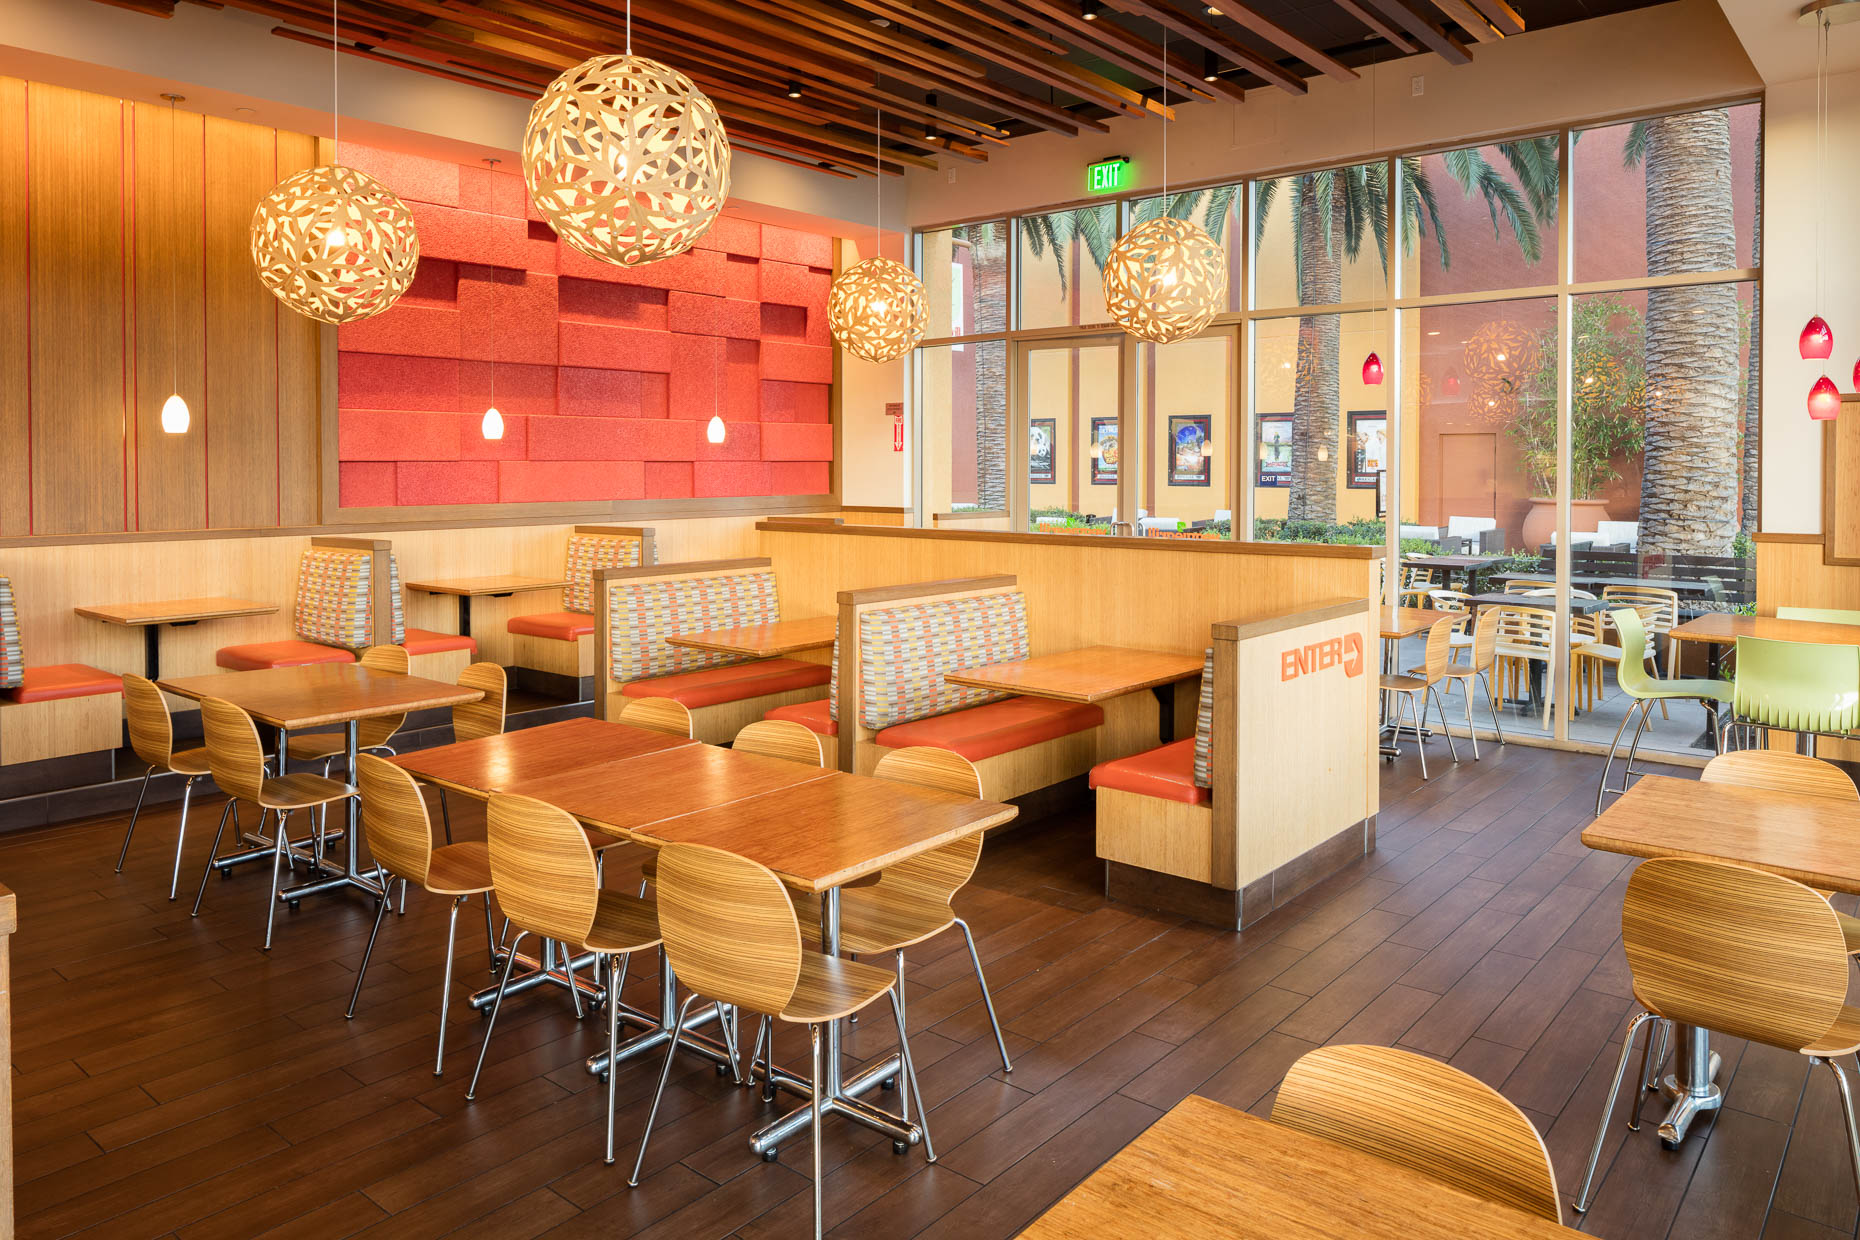 Interior architecture photography of commercial restaurant Veggie Grill in Los Angeles, California.